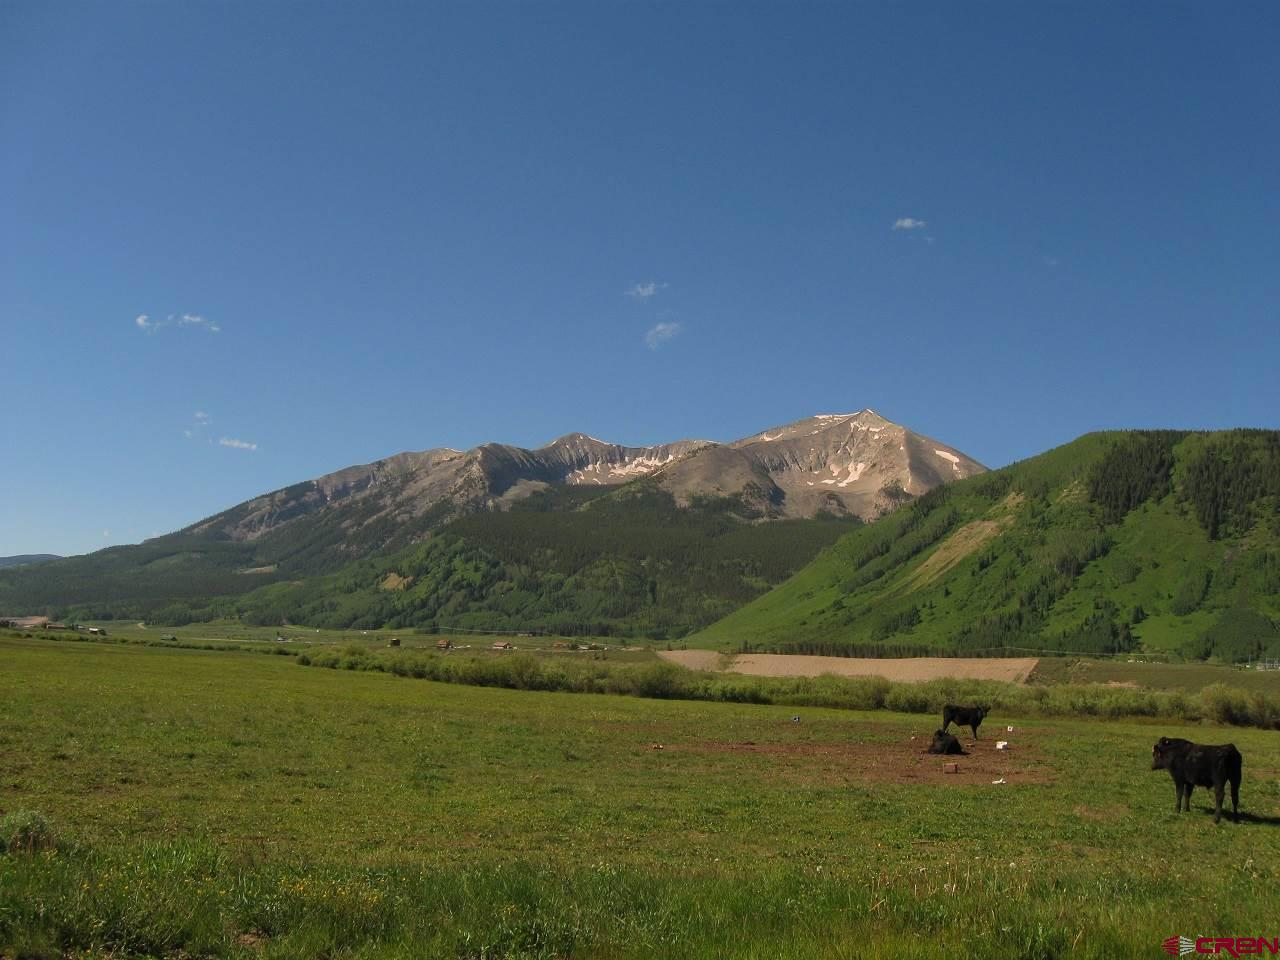 MLS# 757733 - 30 - 341 Mccormick Ranch Road, Crested Butte, CO 81224